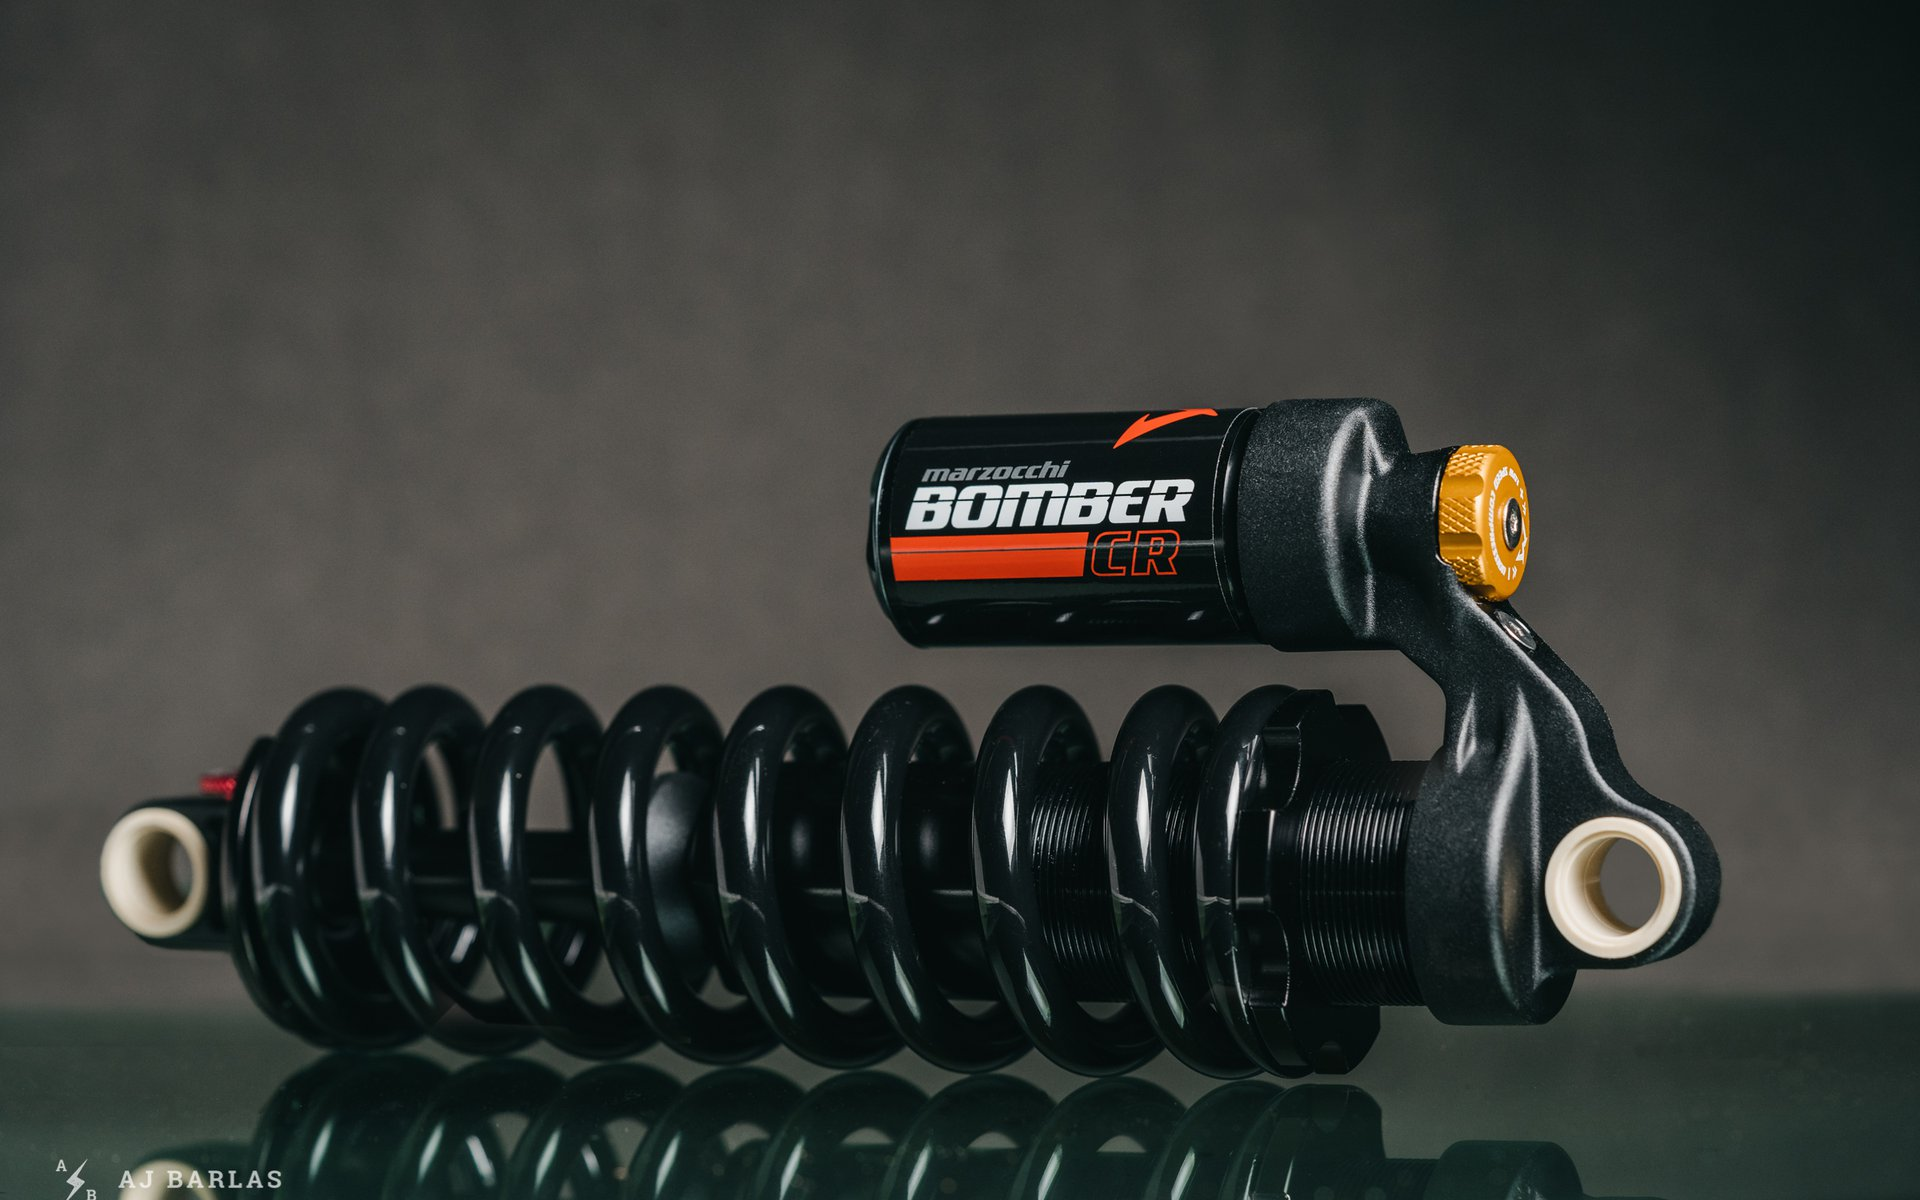 Marzocchi Bomber CR Coil Shock Review